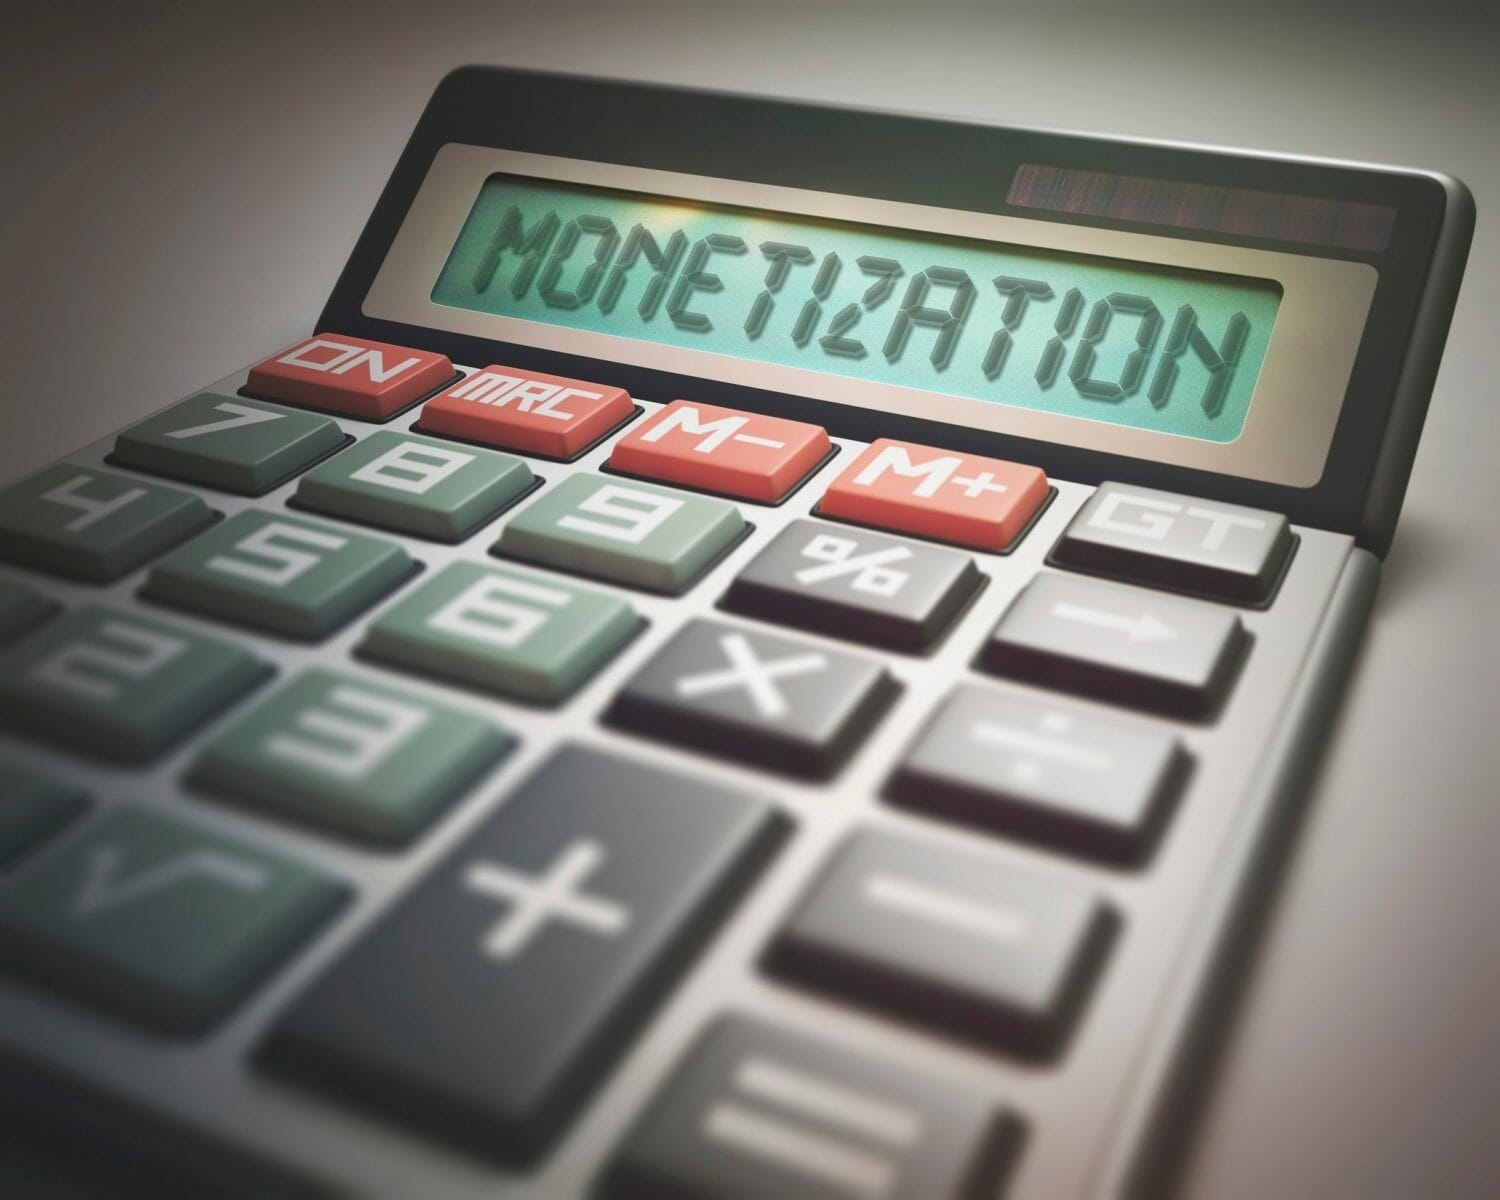 Calculator with the word monetization, illustration.